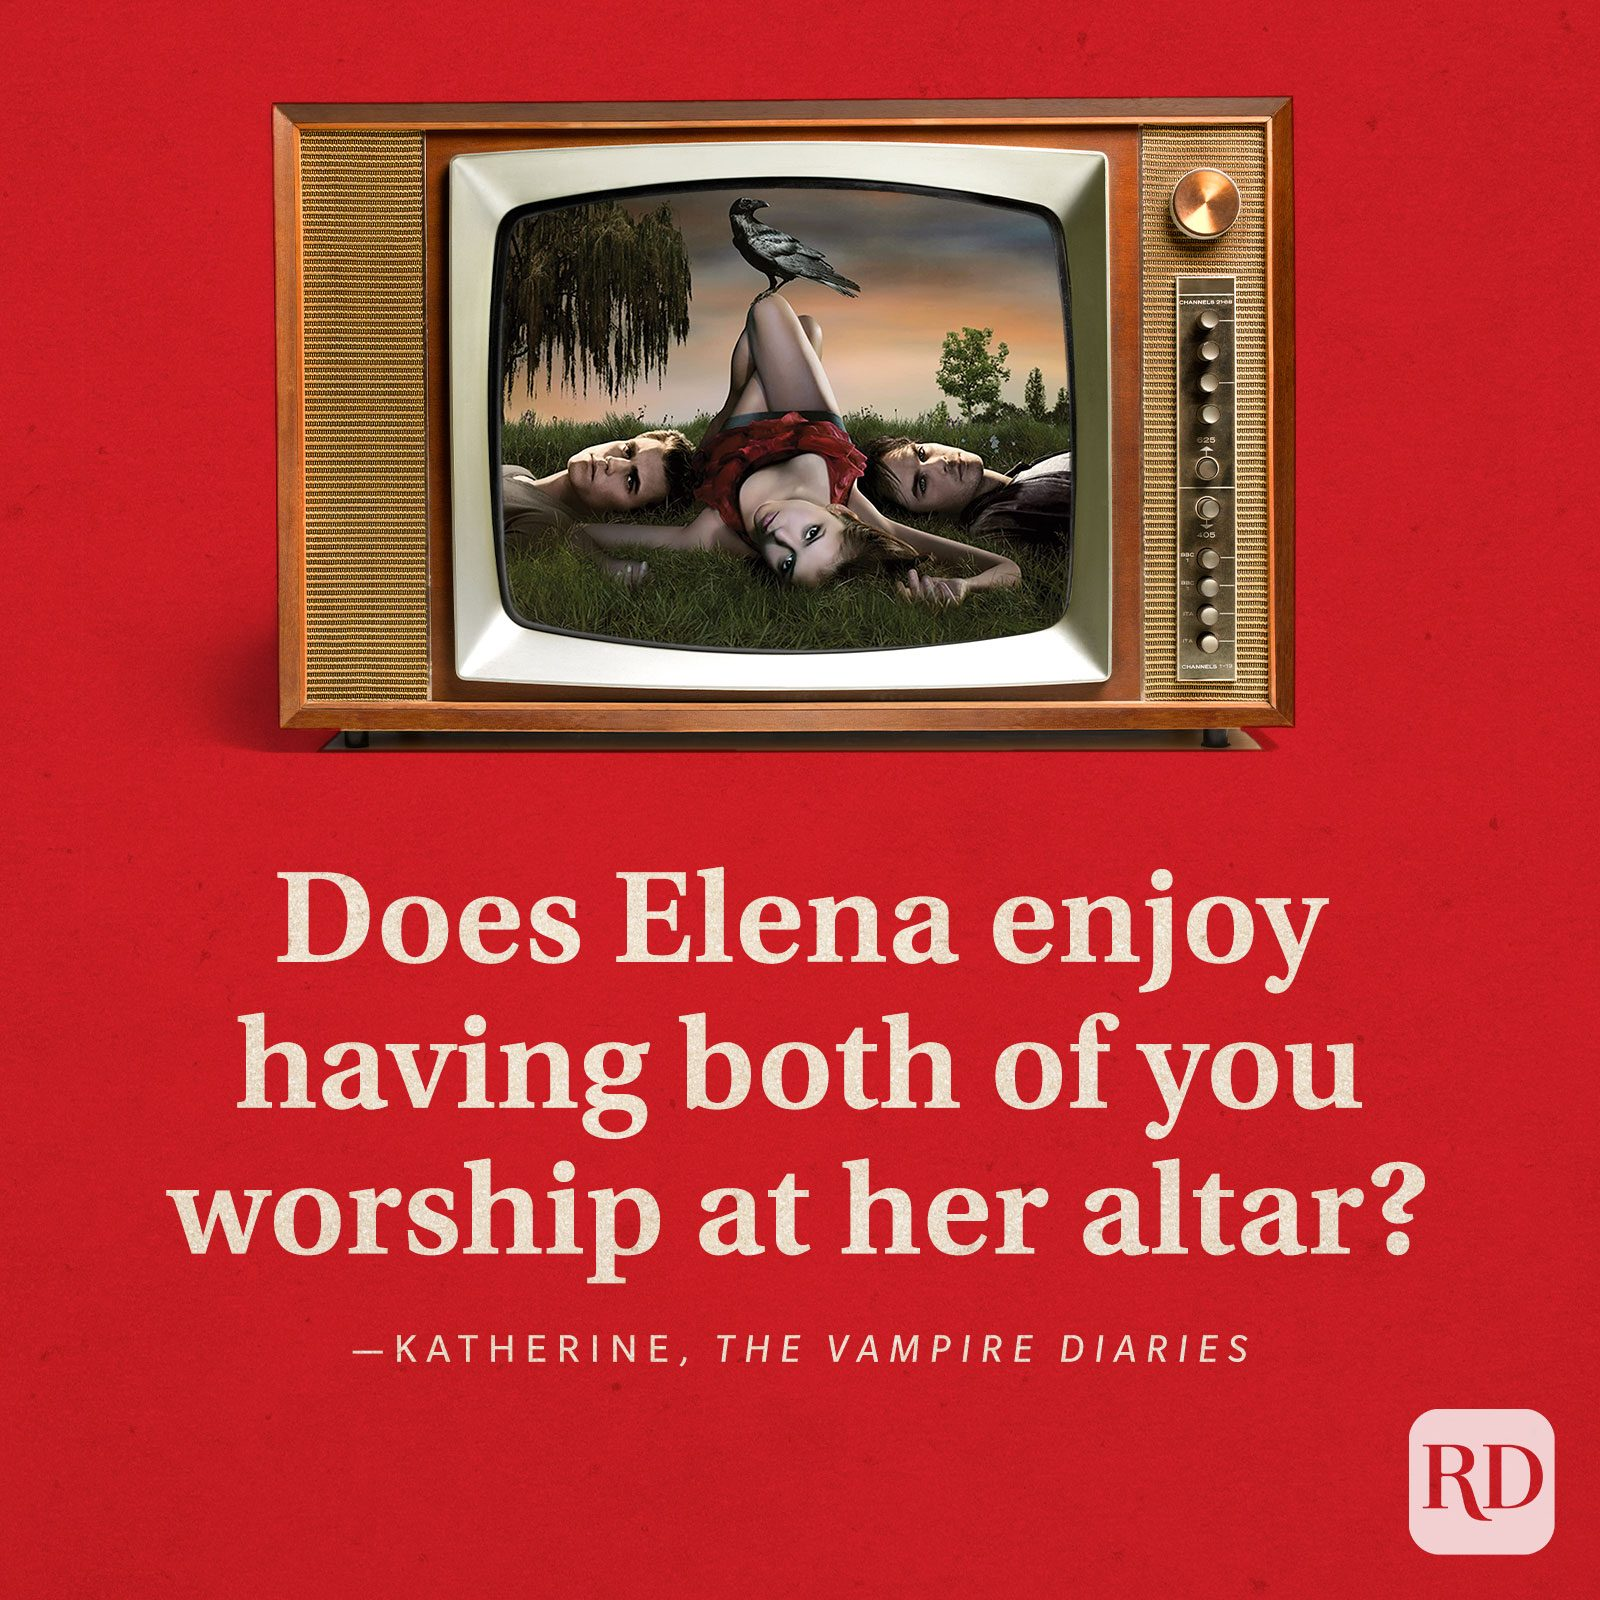 """""""Does Elena enjoy having both of you worship at her altar?"""" -Katherine in The Vampire Diaries."""